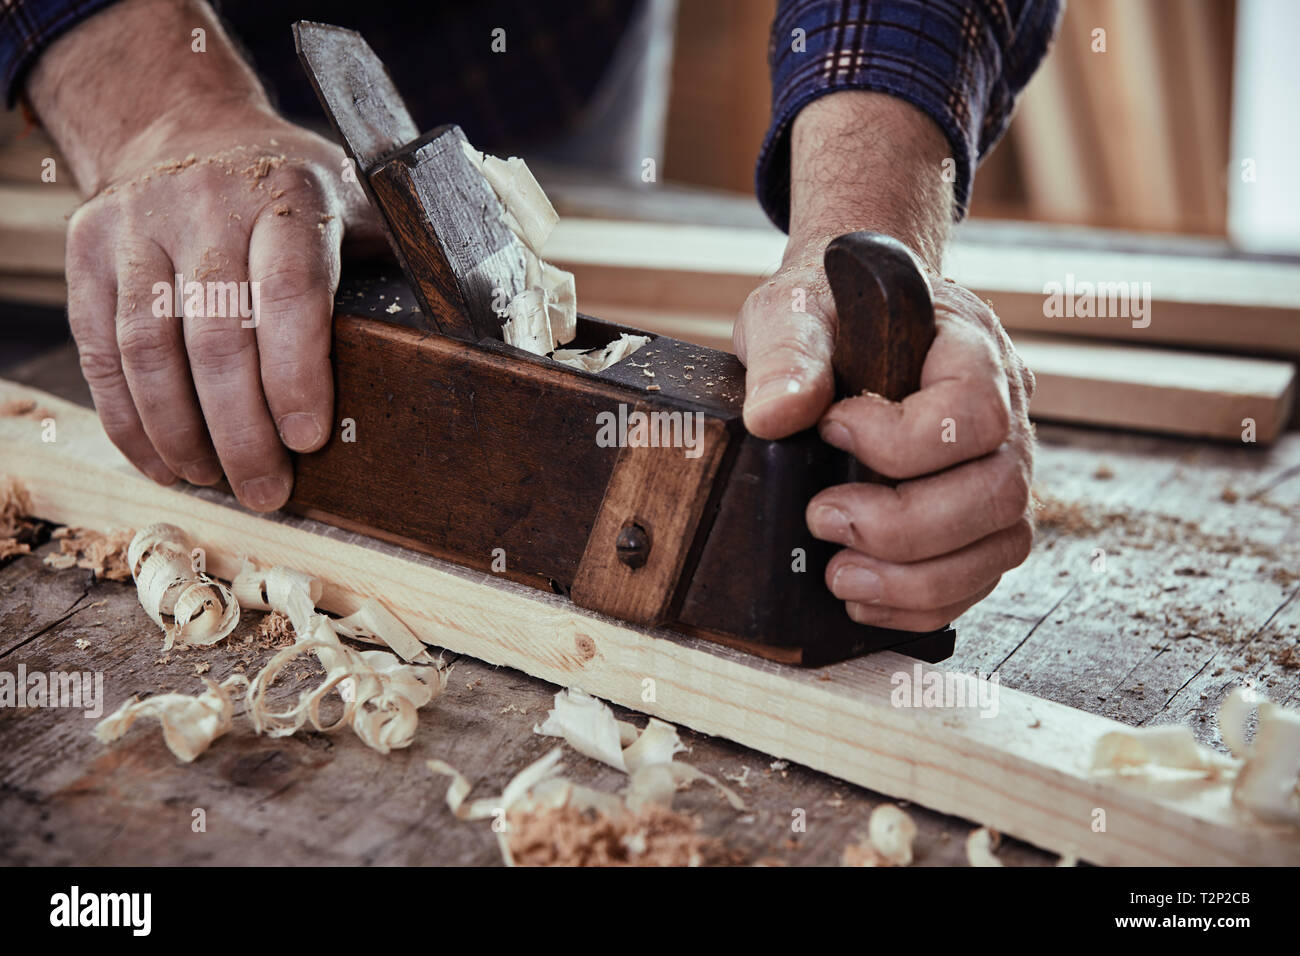 Woodworker using a plane to smooth down the surface of a plank of lumber on his workbench in a close up view on his hands with sawdust and fresh shavi - Stock Image